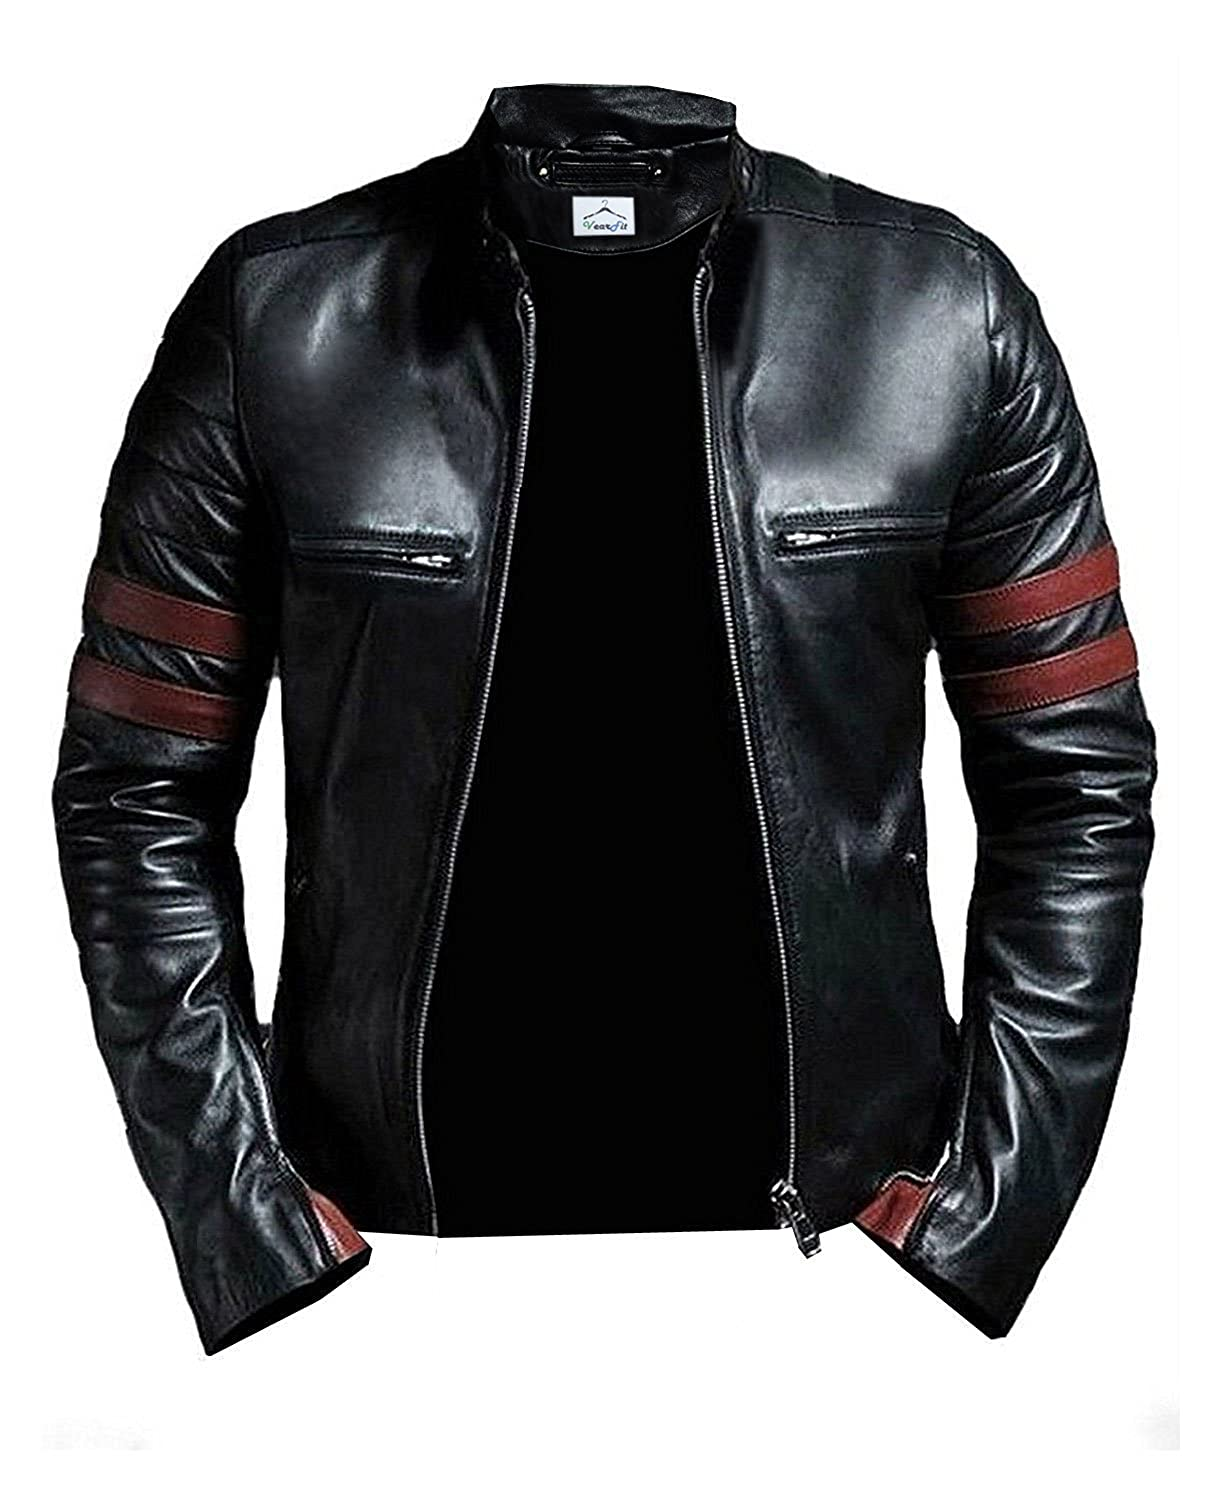 VearFit Hybrid Mayhem Hero Black PU Faux Leather Biker Jacket for Men HF16-M10